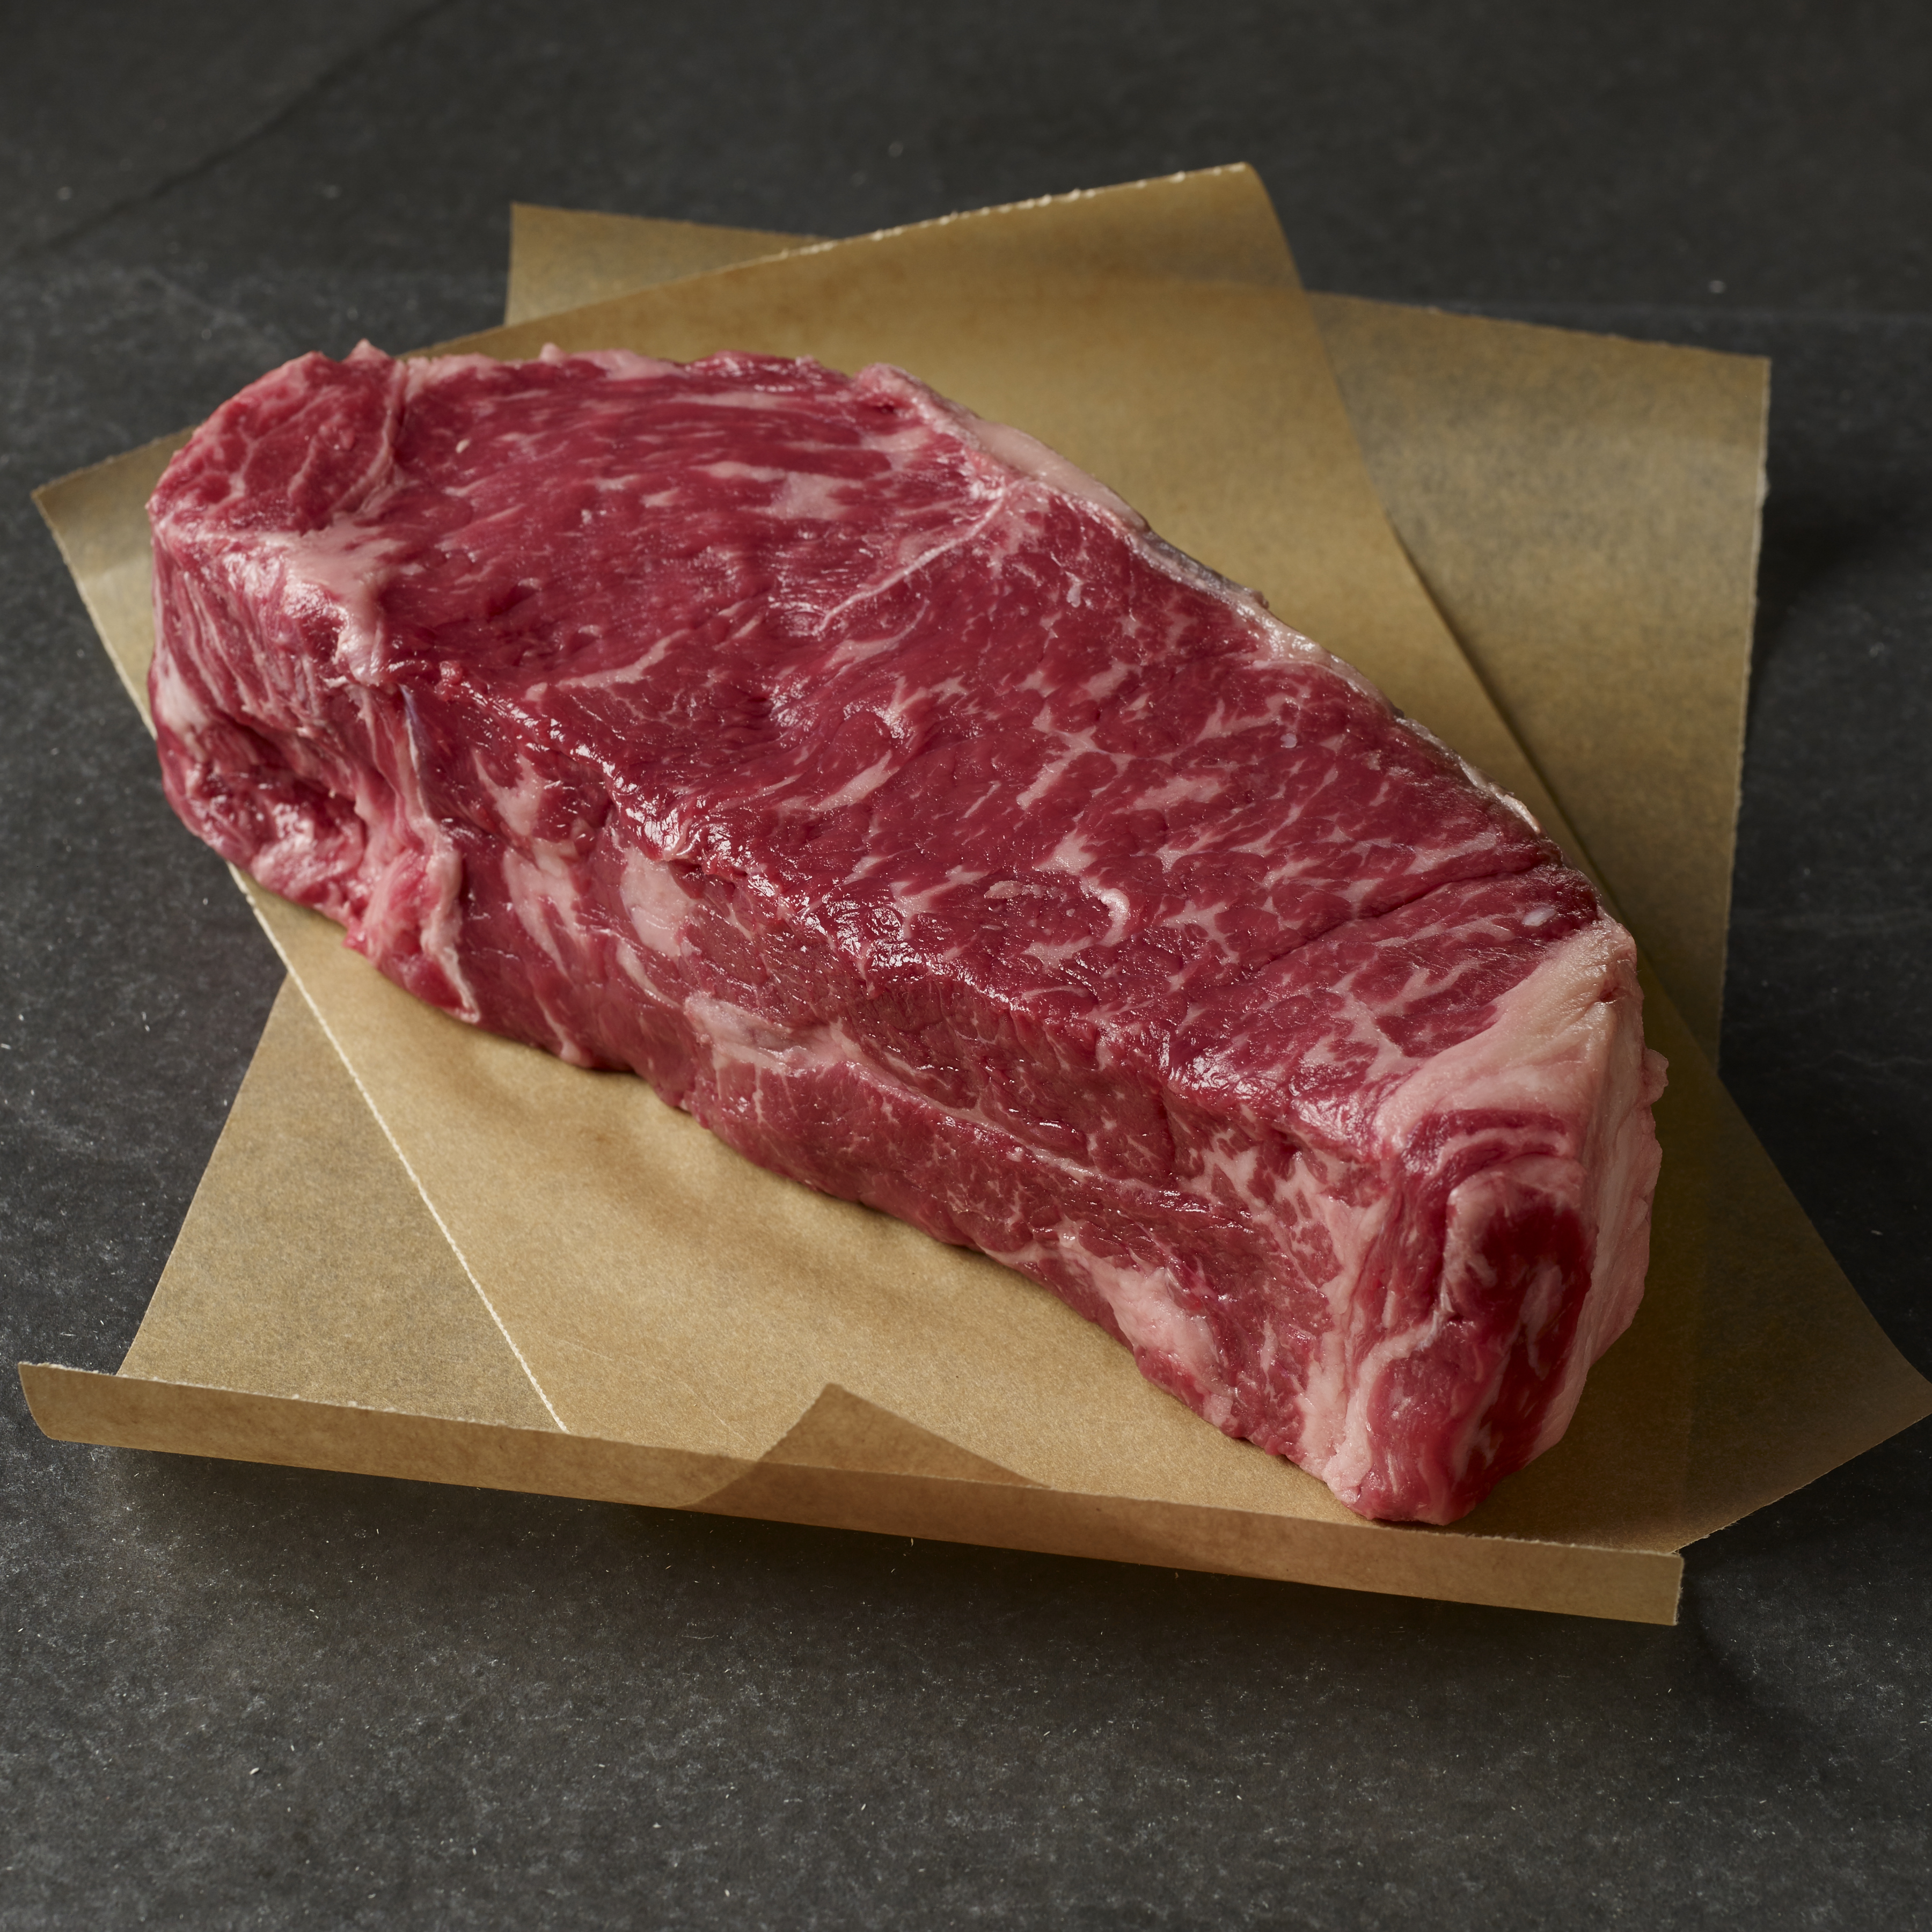 USDA Prime Dry-Aged Boneless Double Strip Steak for Two